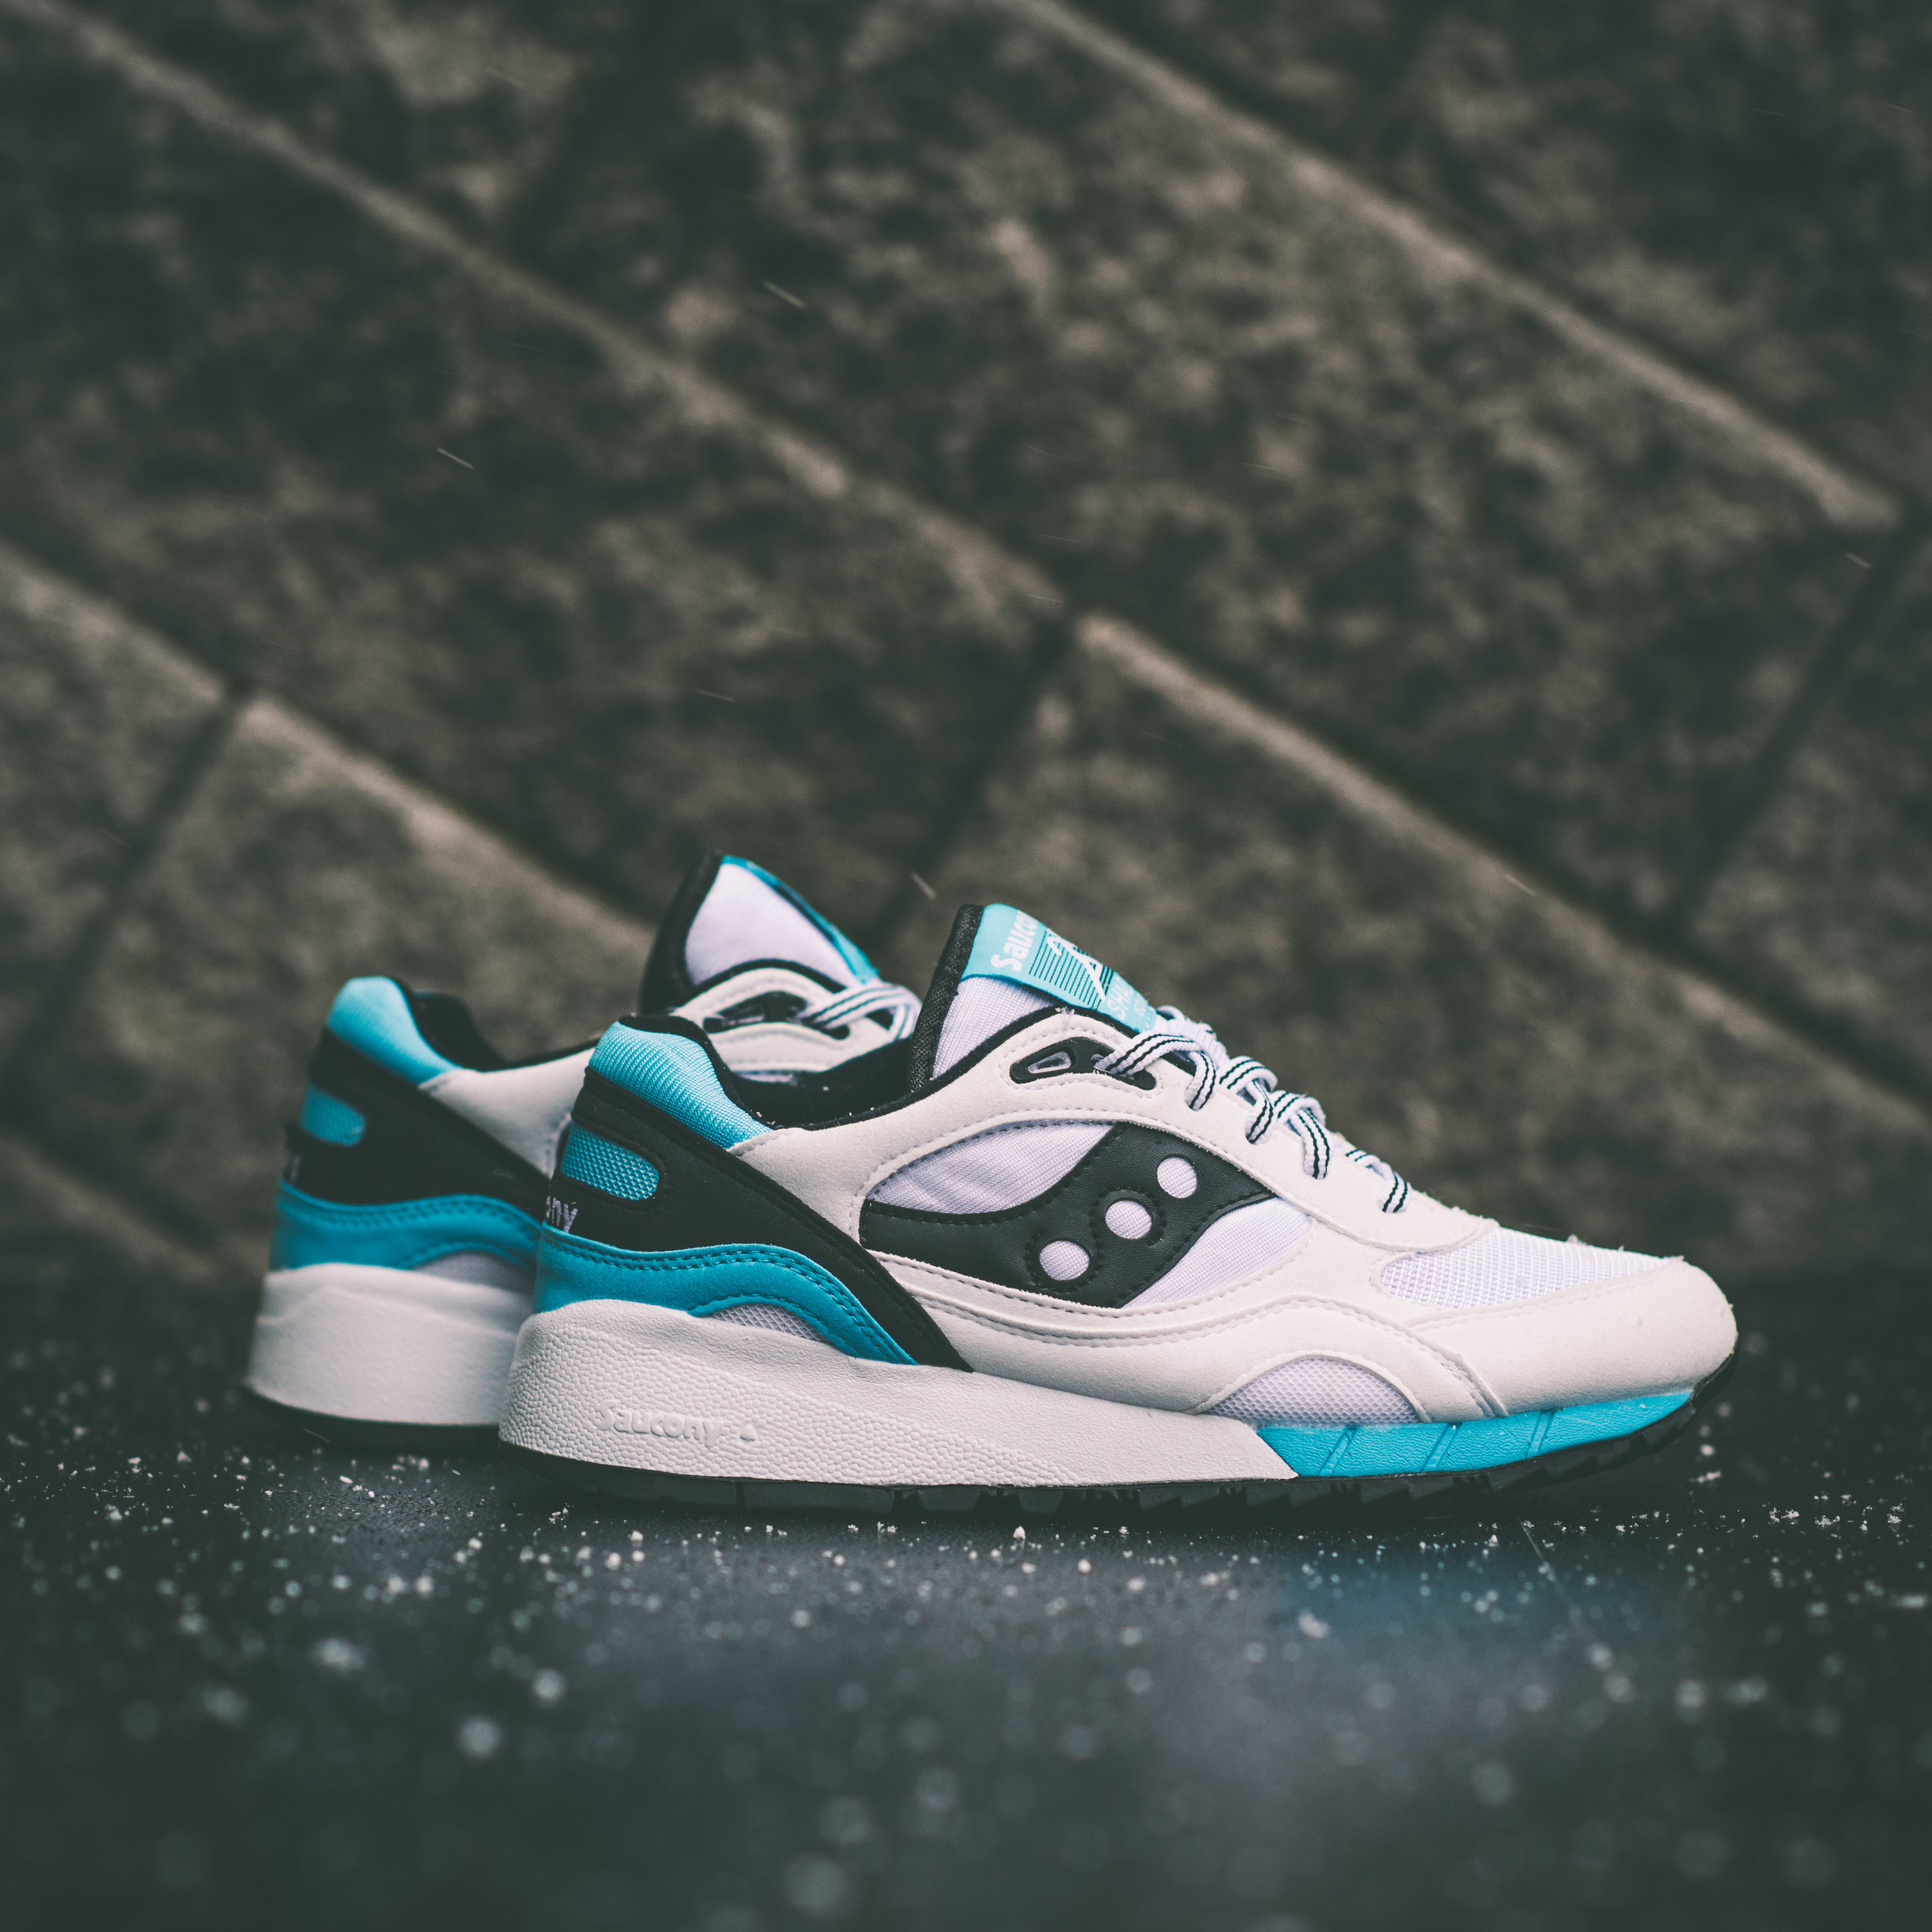 a186893e The Shadow 6000 and GRID 9000 are Saucony staples. The Shadow 6000 is an  80's classic, and this model features white as the base color with hints of  light ...